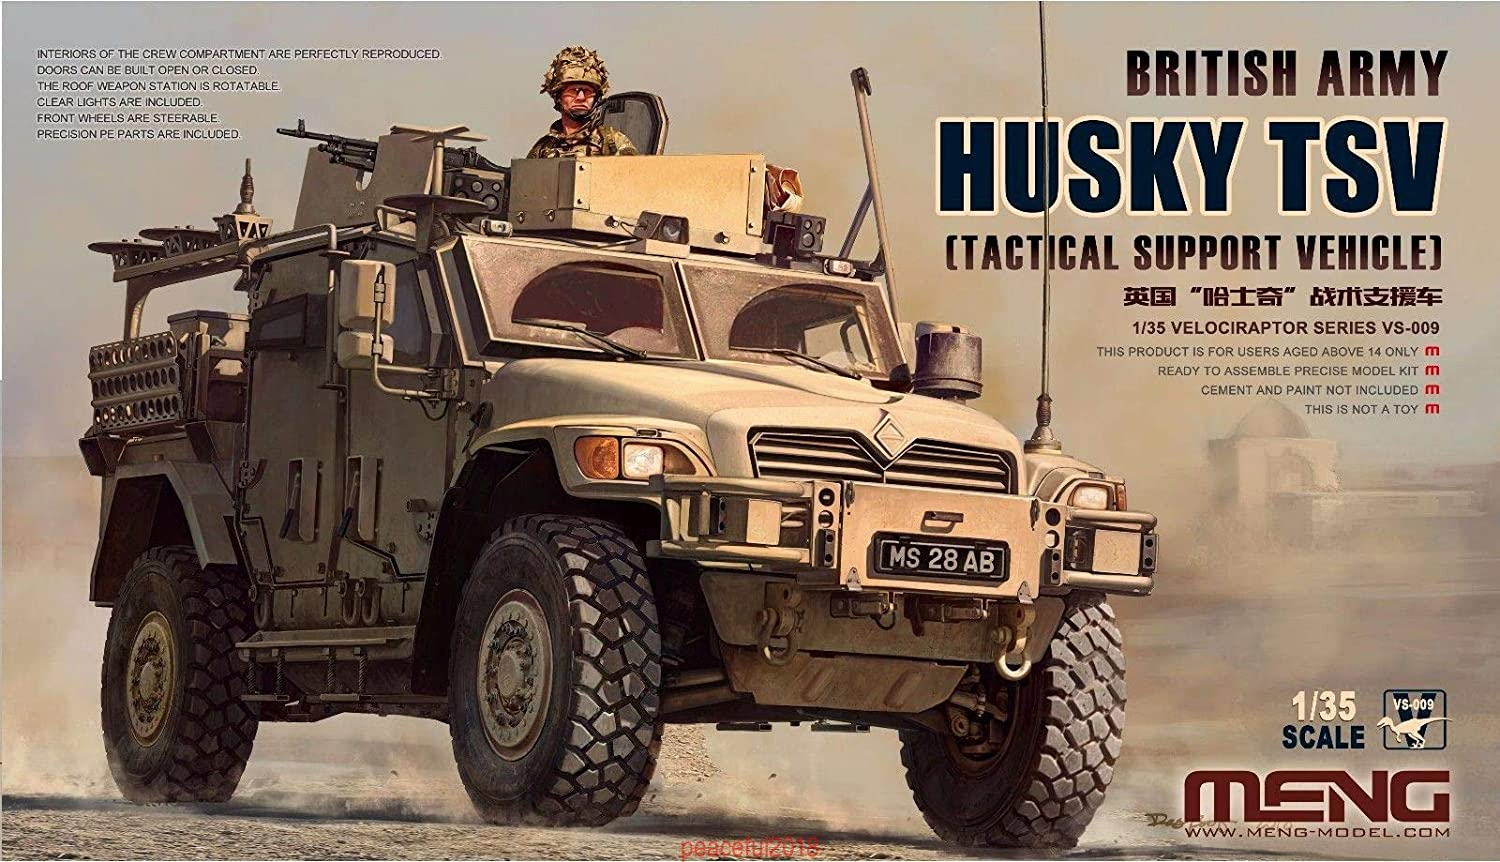 Meng 1 35 Scale British Army Husky Tsv Tactical Support Vehicle Plastic Model Building Kit Vs 009 Toys Games